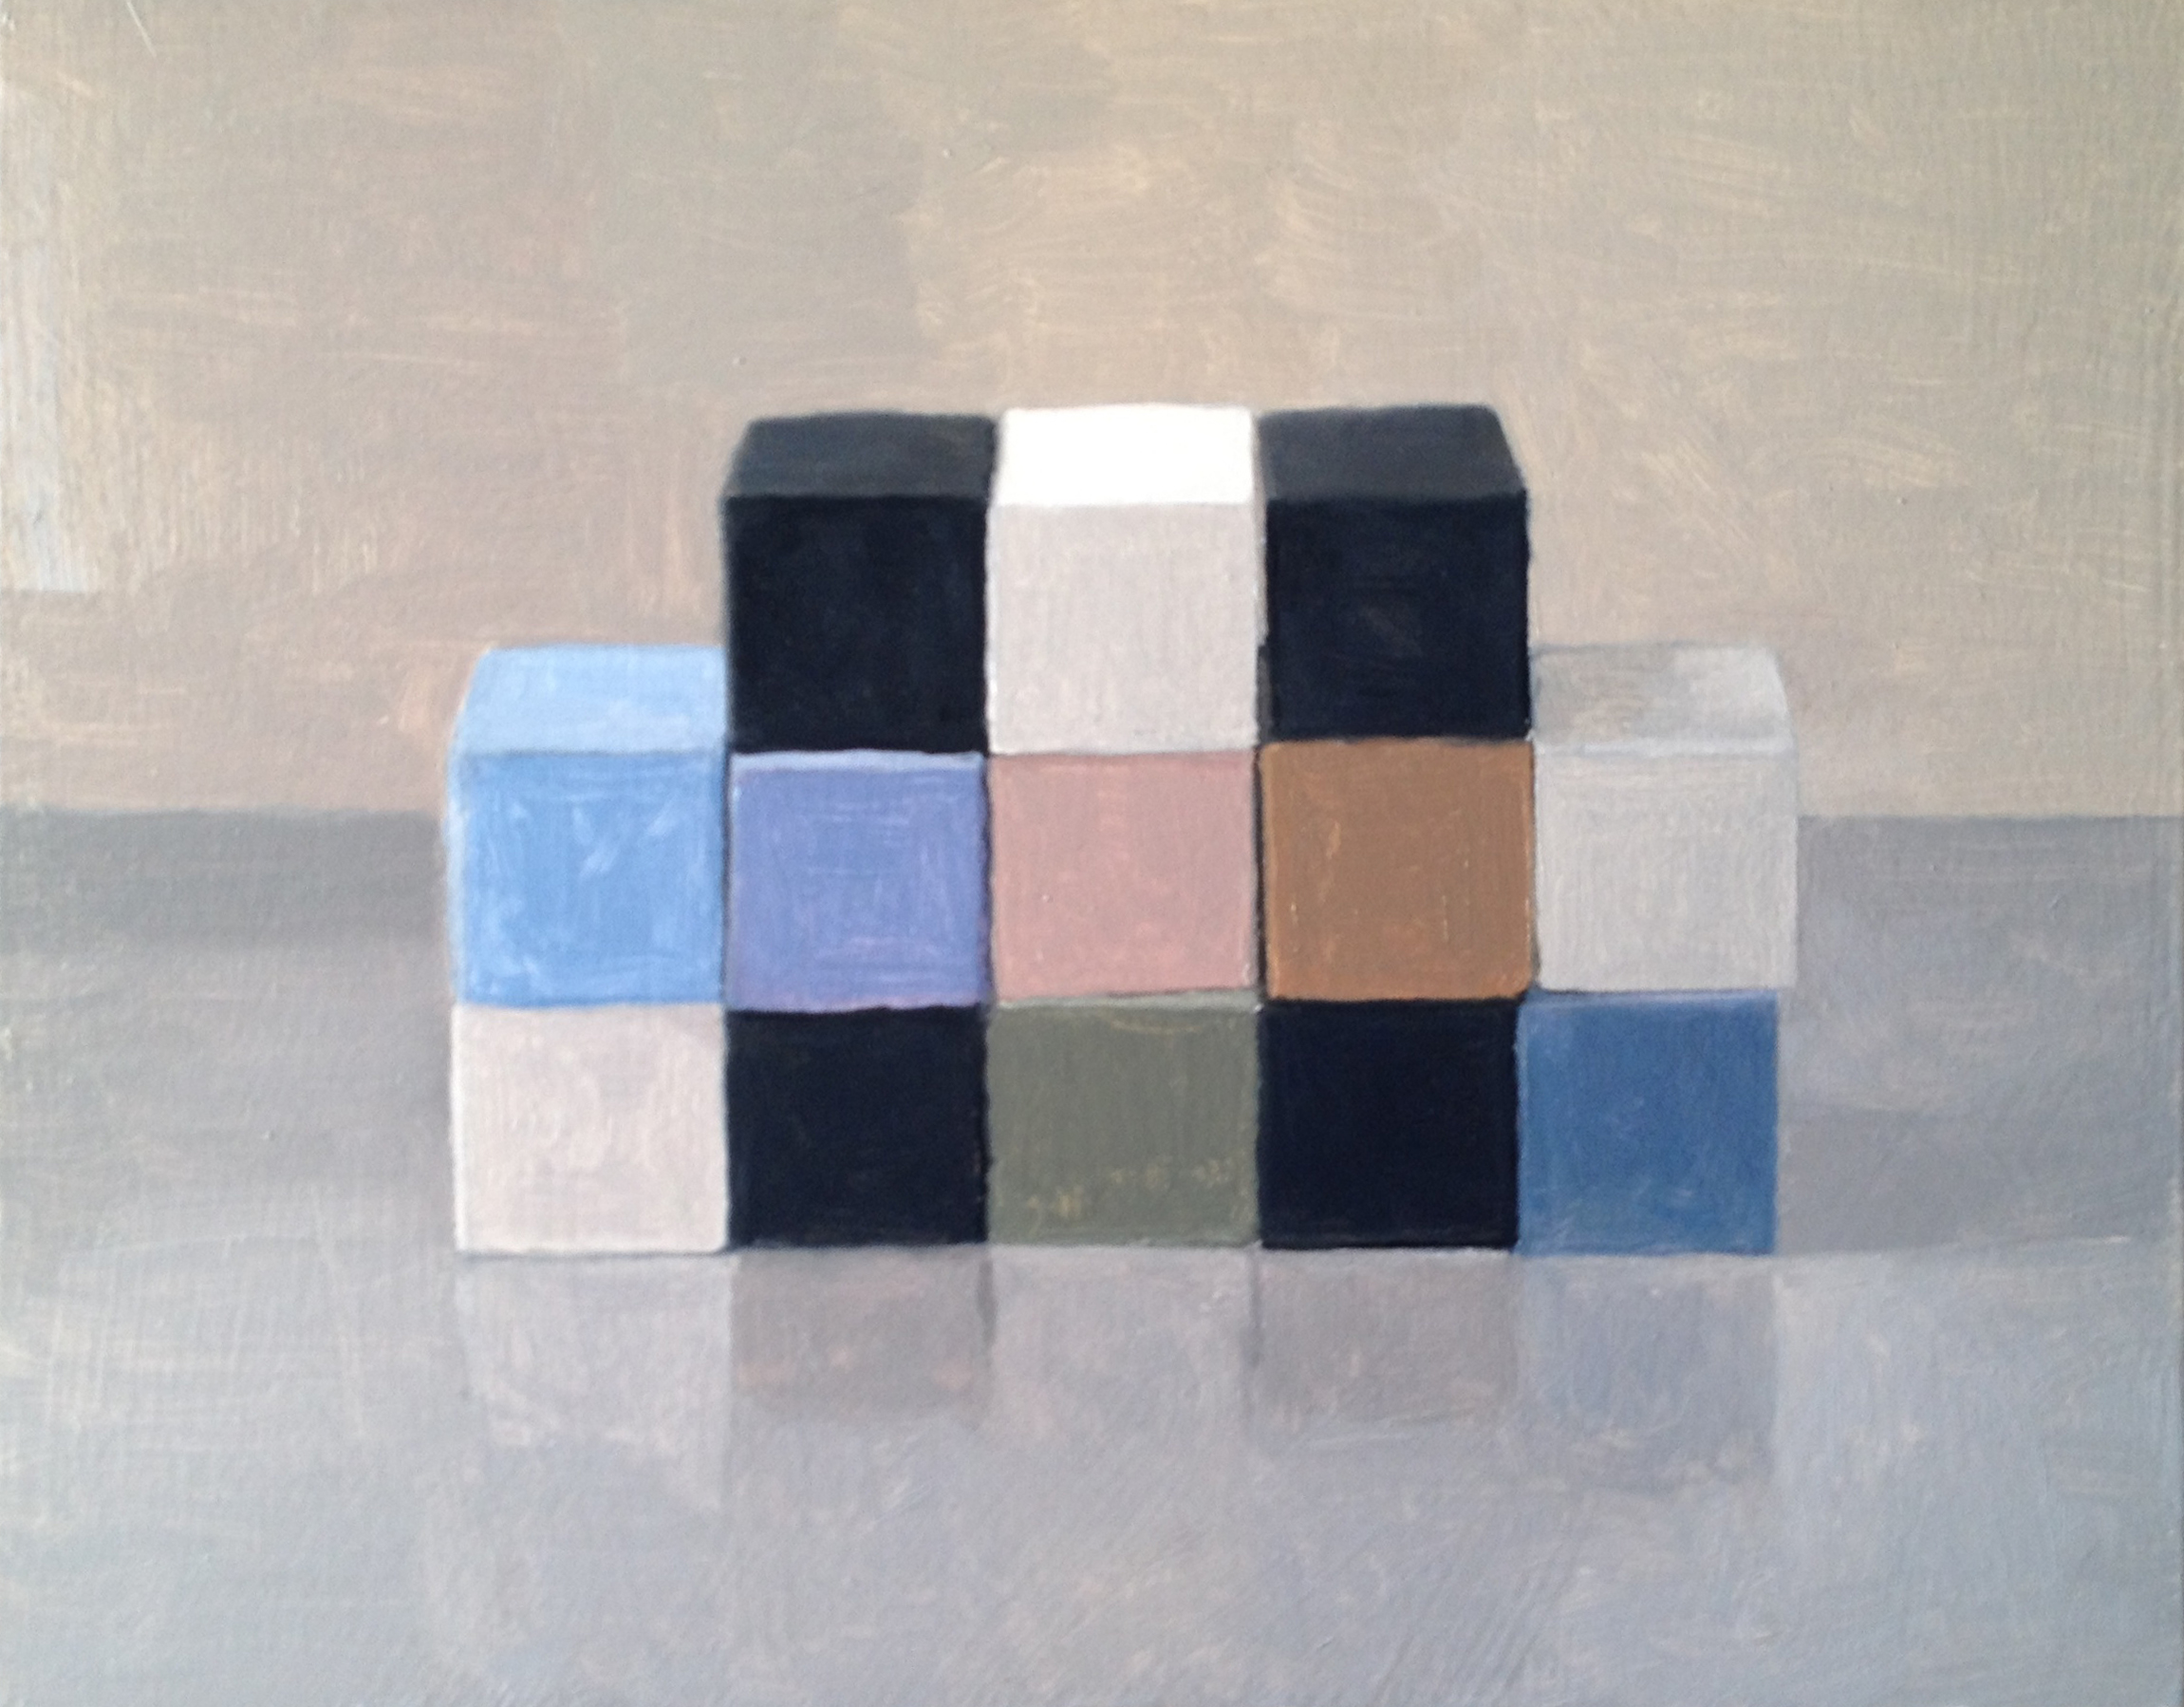 Study, Checkerboard VI , 2014 Oil on wood, 28 x 35 cm SOLD